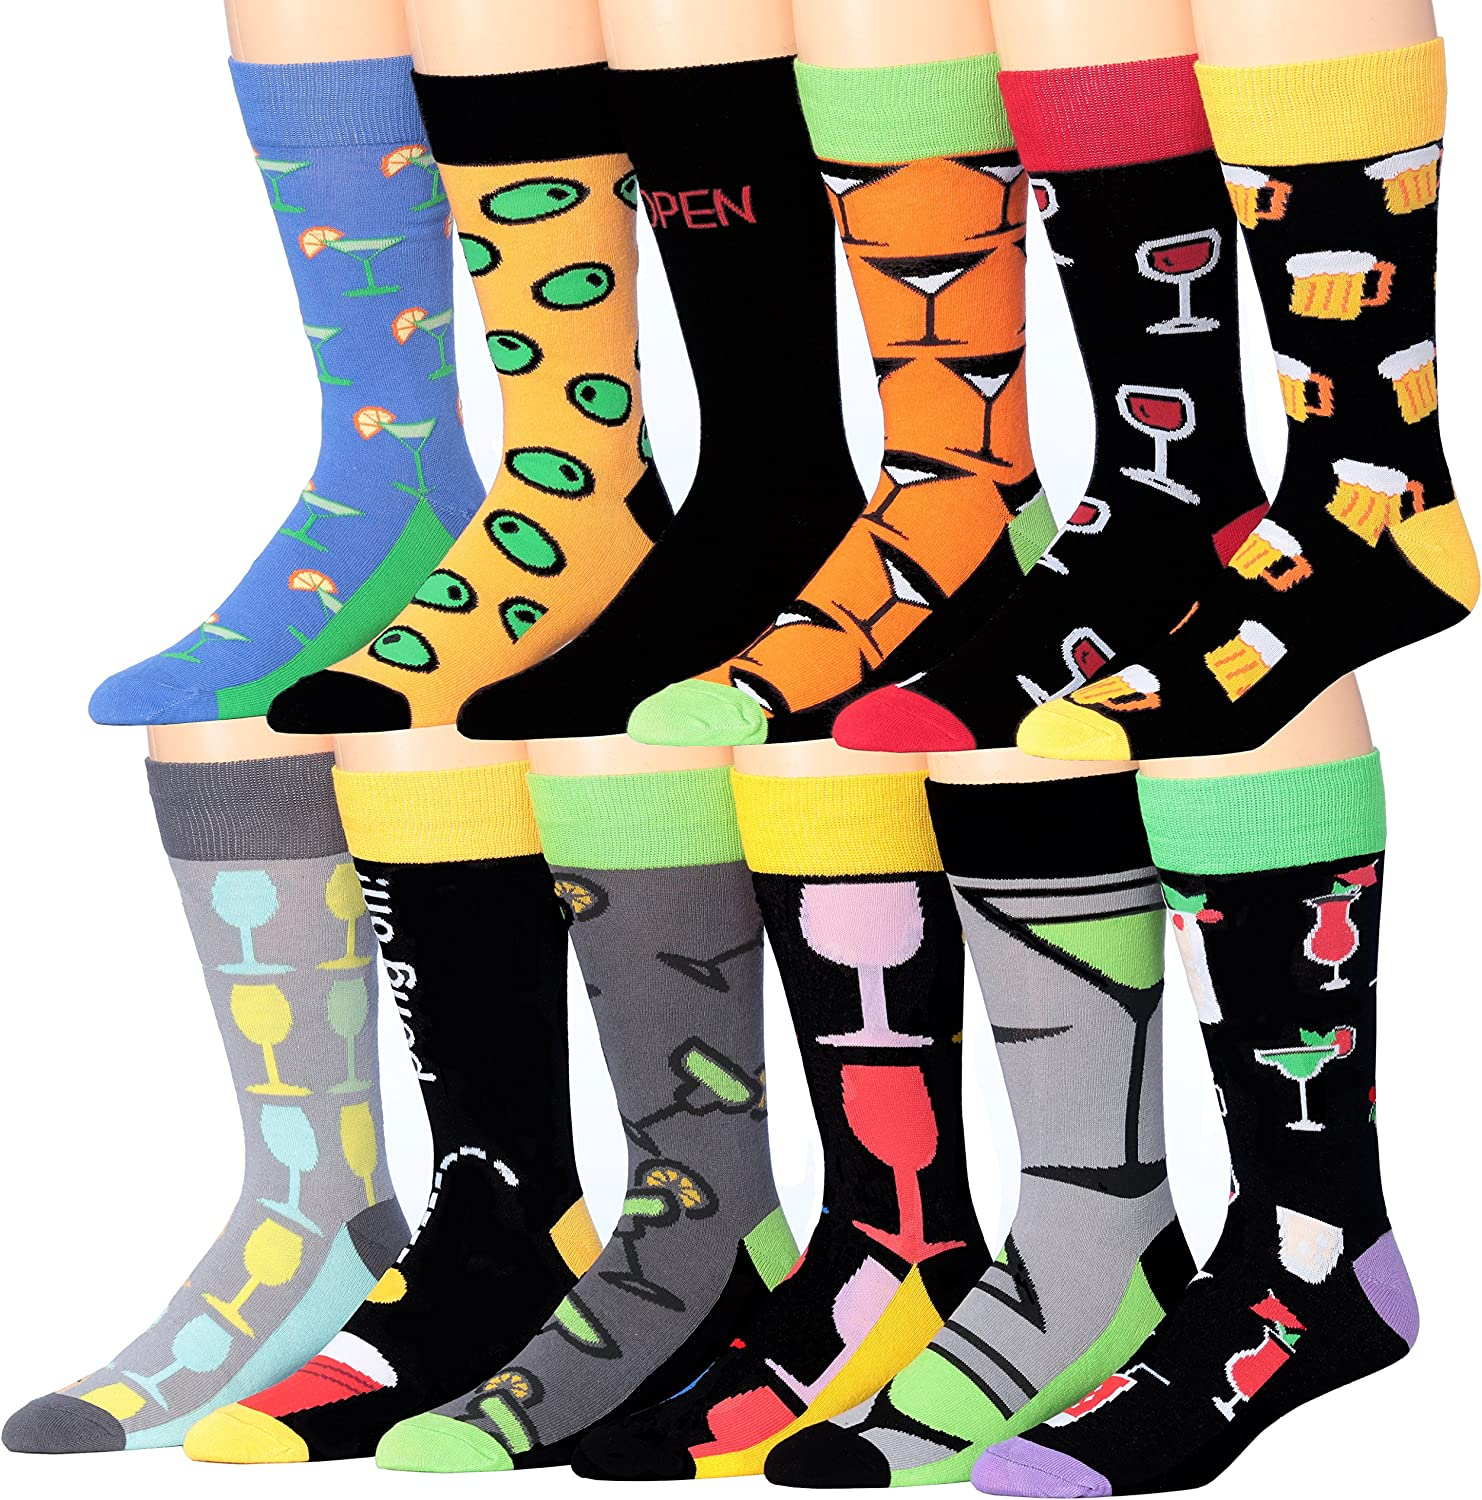 ColorfutMen's 12 Pairs Soft Cotton Blend Colorful Funky Gift Box Dress Socks